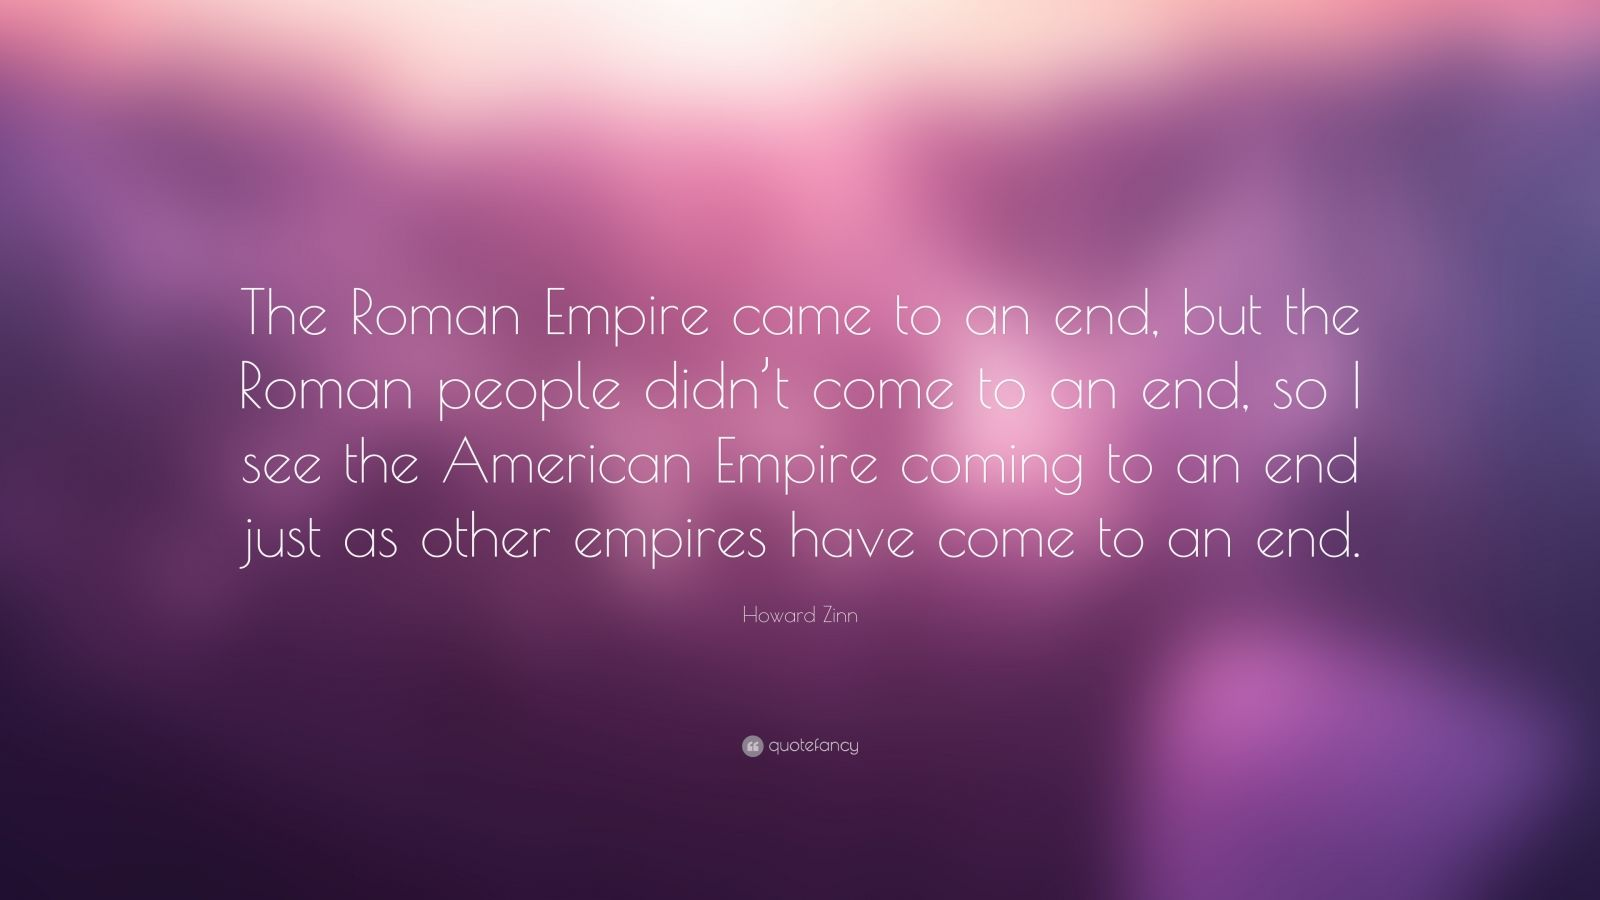 """Howard Zinn Quote: """"The Roman Empire came to an end, but the Roman people didn't come to an end, so I see the American Empire coming to an end just as other empires have come to an end."""""""